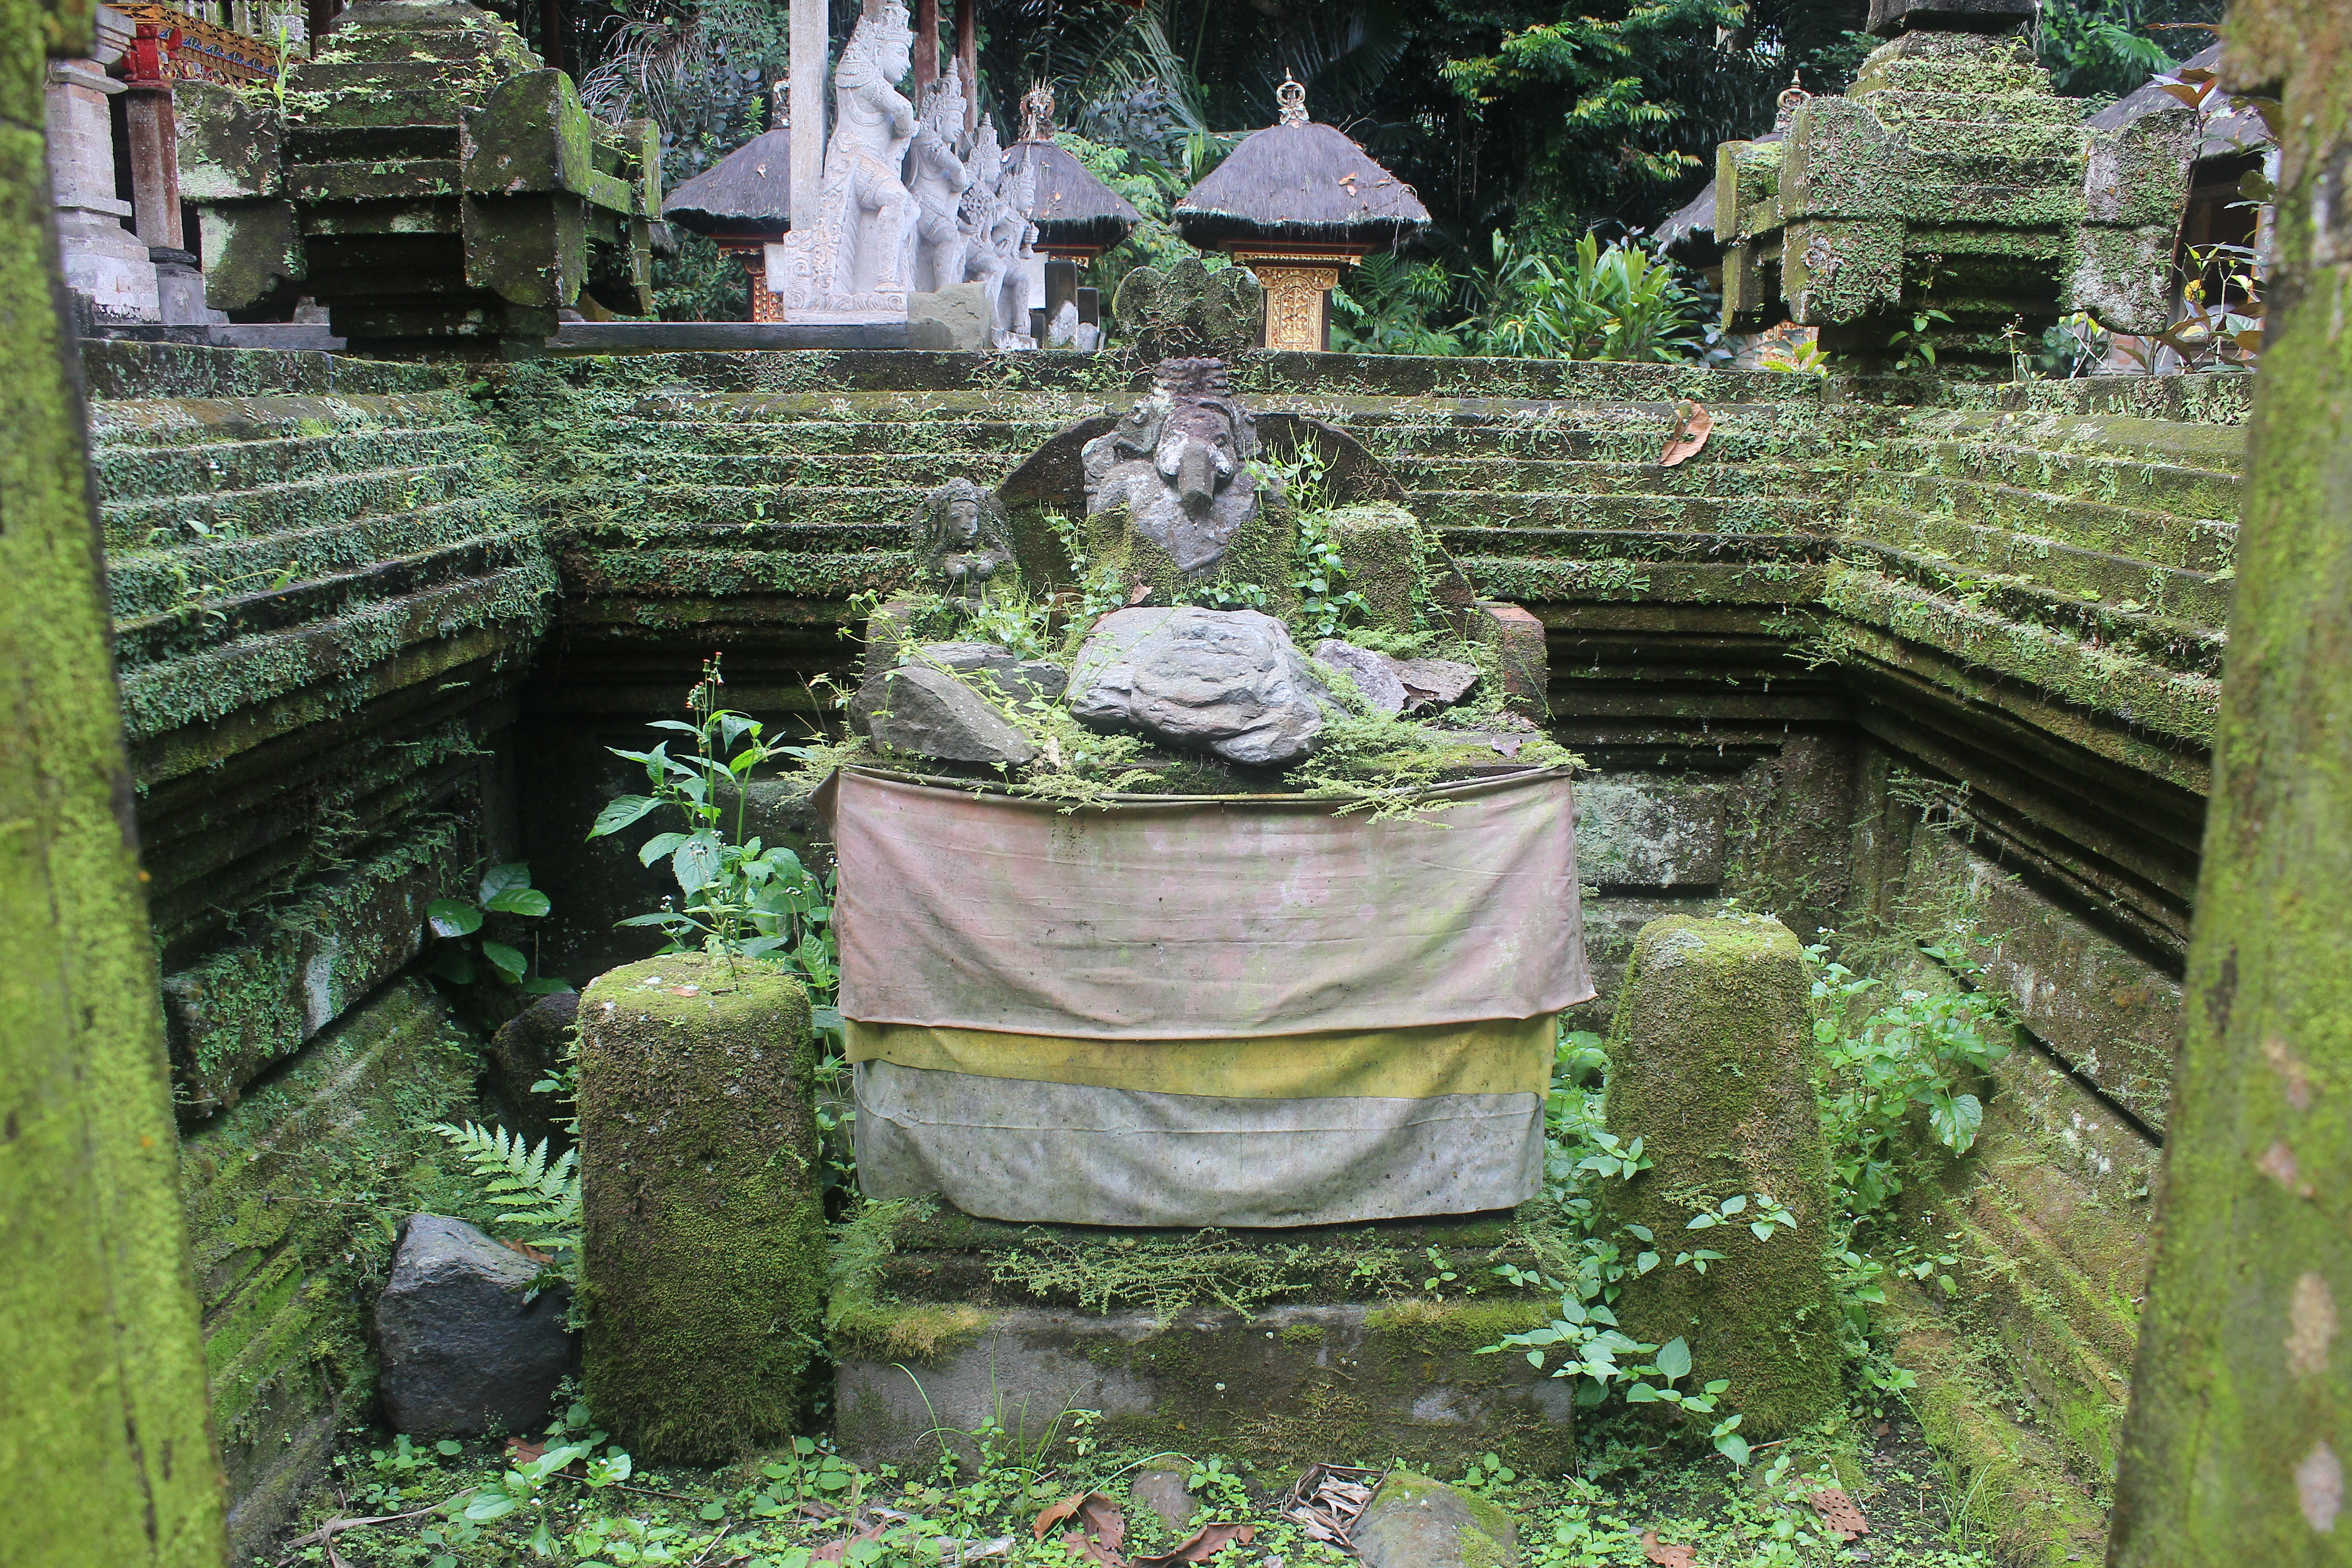 Overgrown low shrine with Ganesha